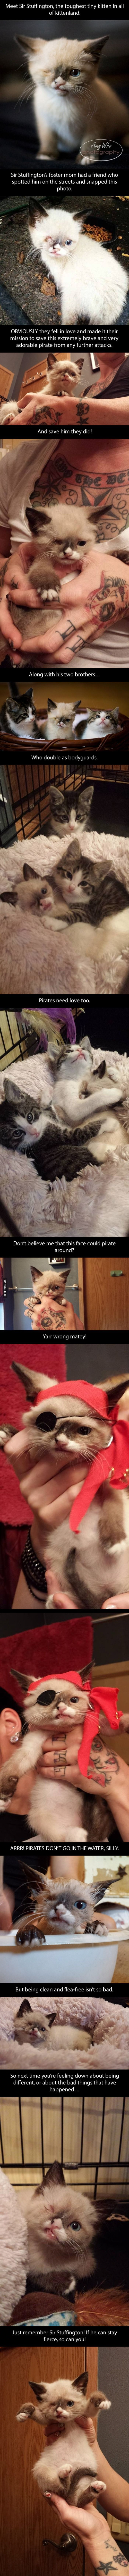 Meet Sir Stuffington, The Cutest Pirate In The World